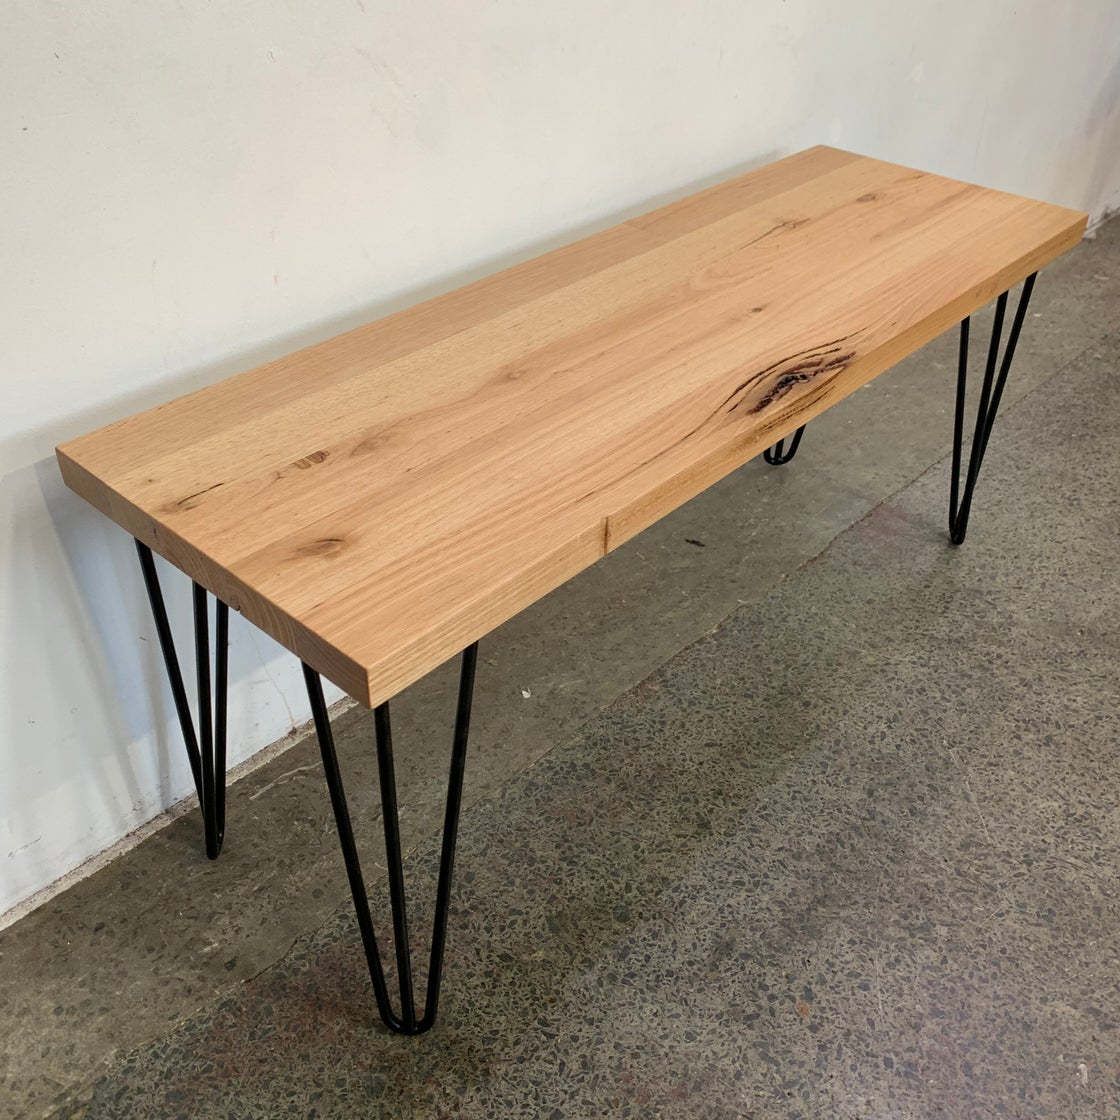 Image of INDUSTRIAL TABLE WITH BENCH SEATS